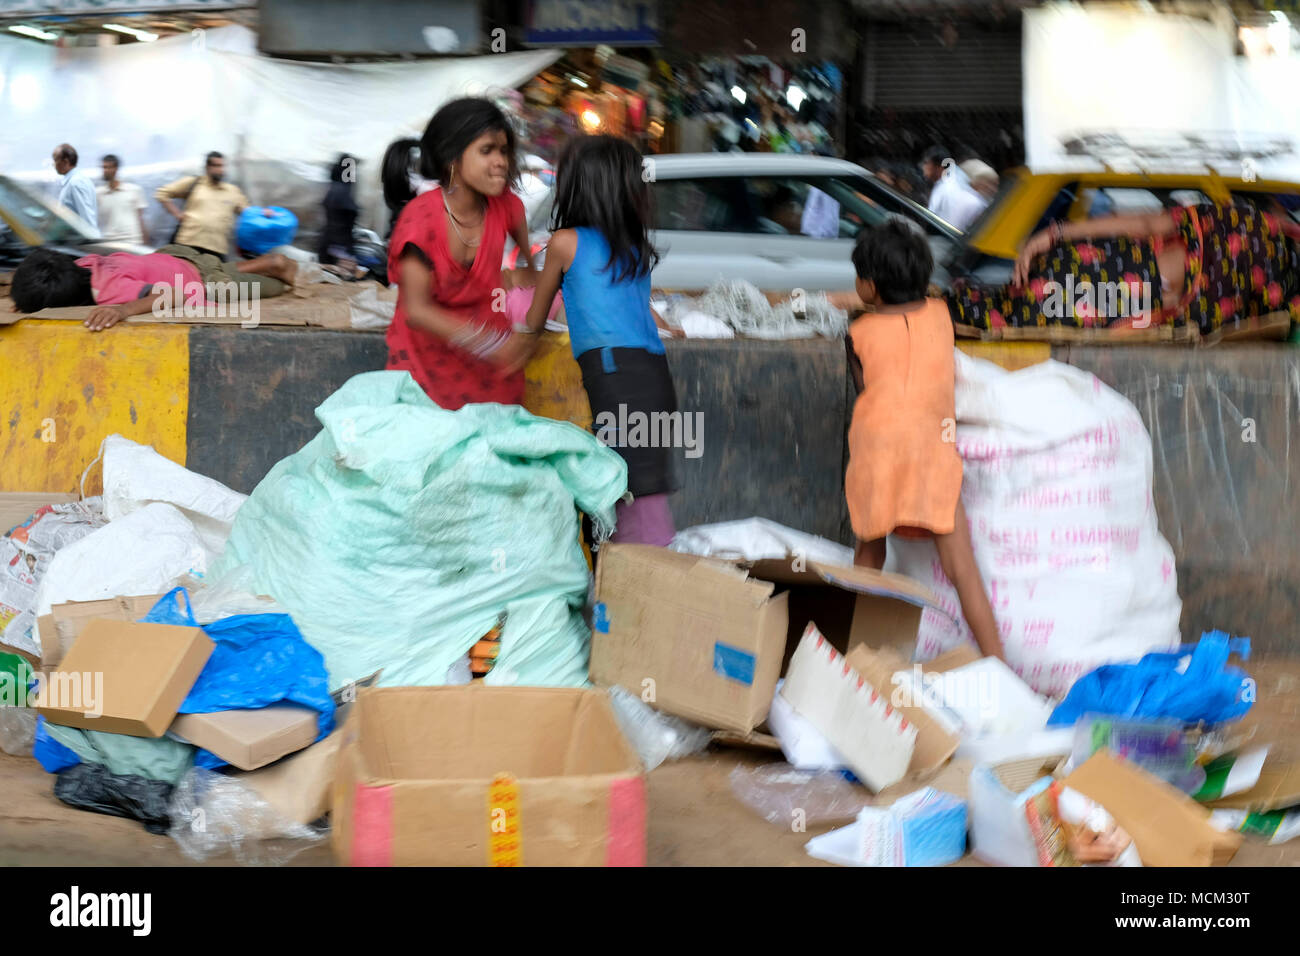 Street children working collecting cardboard and garbage in downtown Mumbai, India - Stock Image